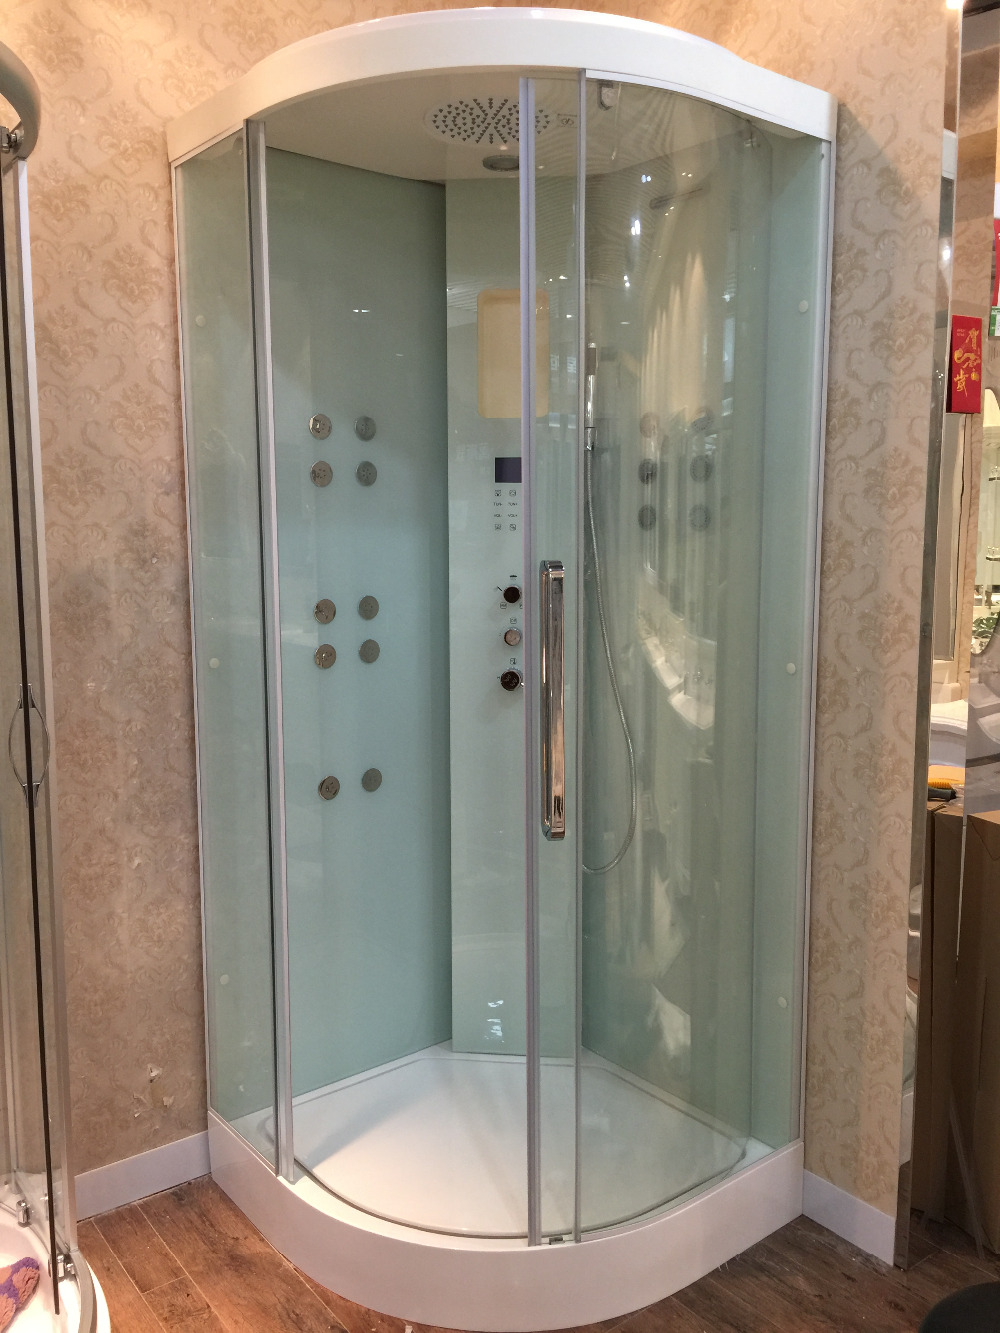 luxury steam shower enclosures bathroom steam shower cabins jetted massage walking in sauna rooms 9009002200mm 8055